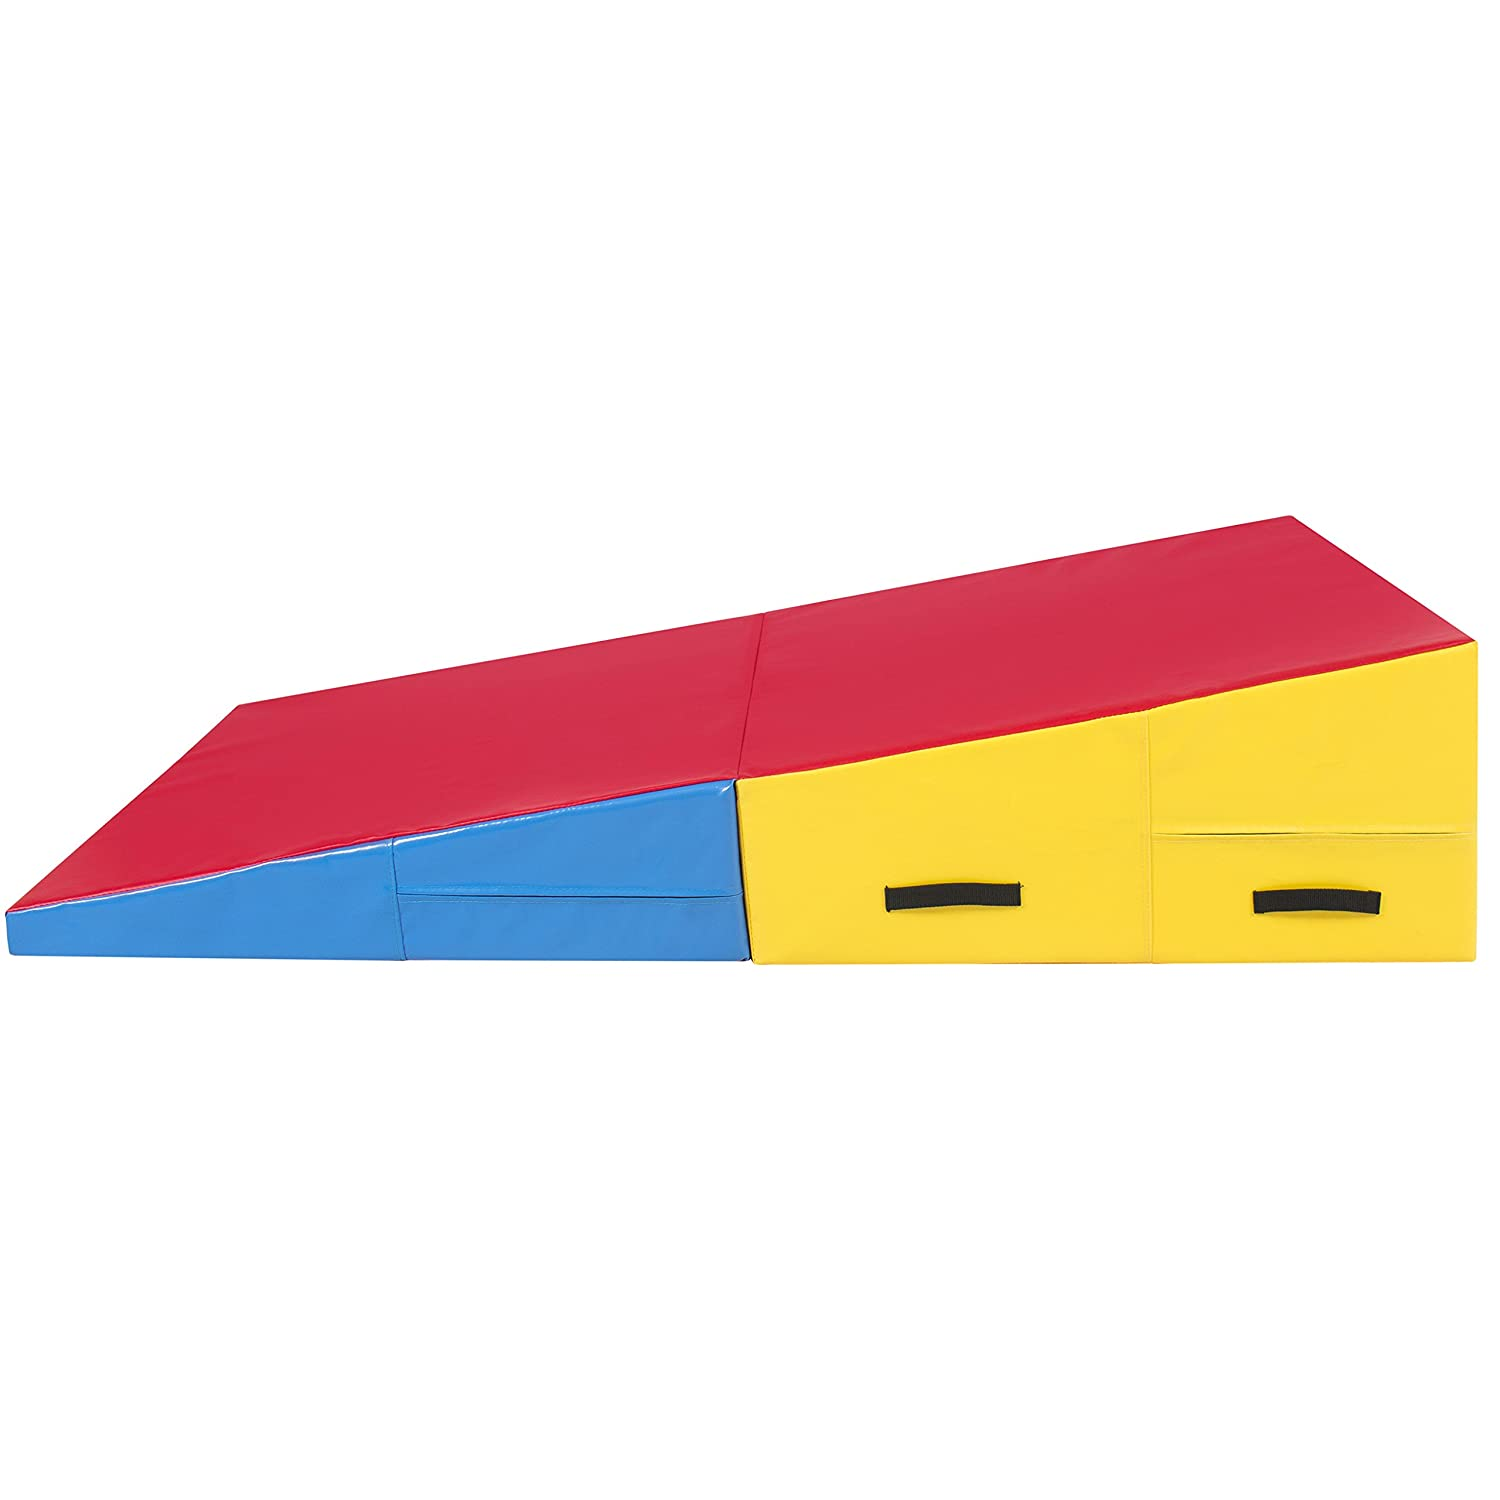 folding mat tumbling of cheese incline large more mats gymnastics slope see wedge